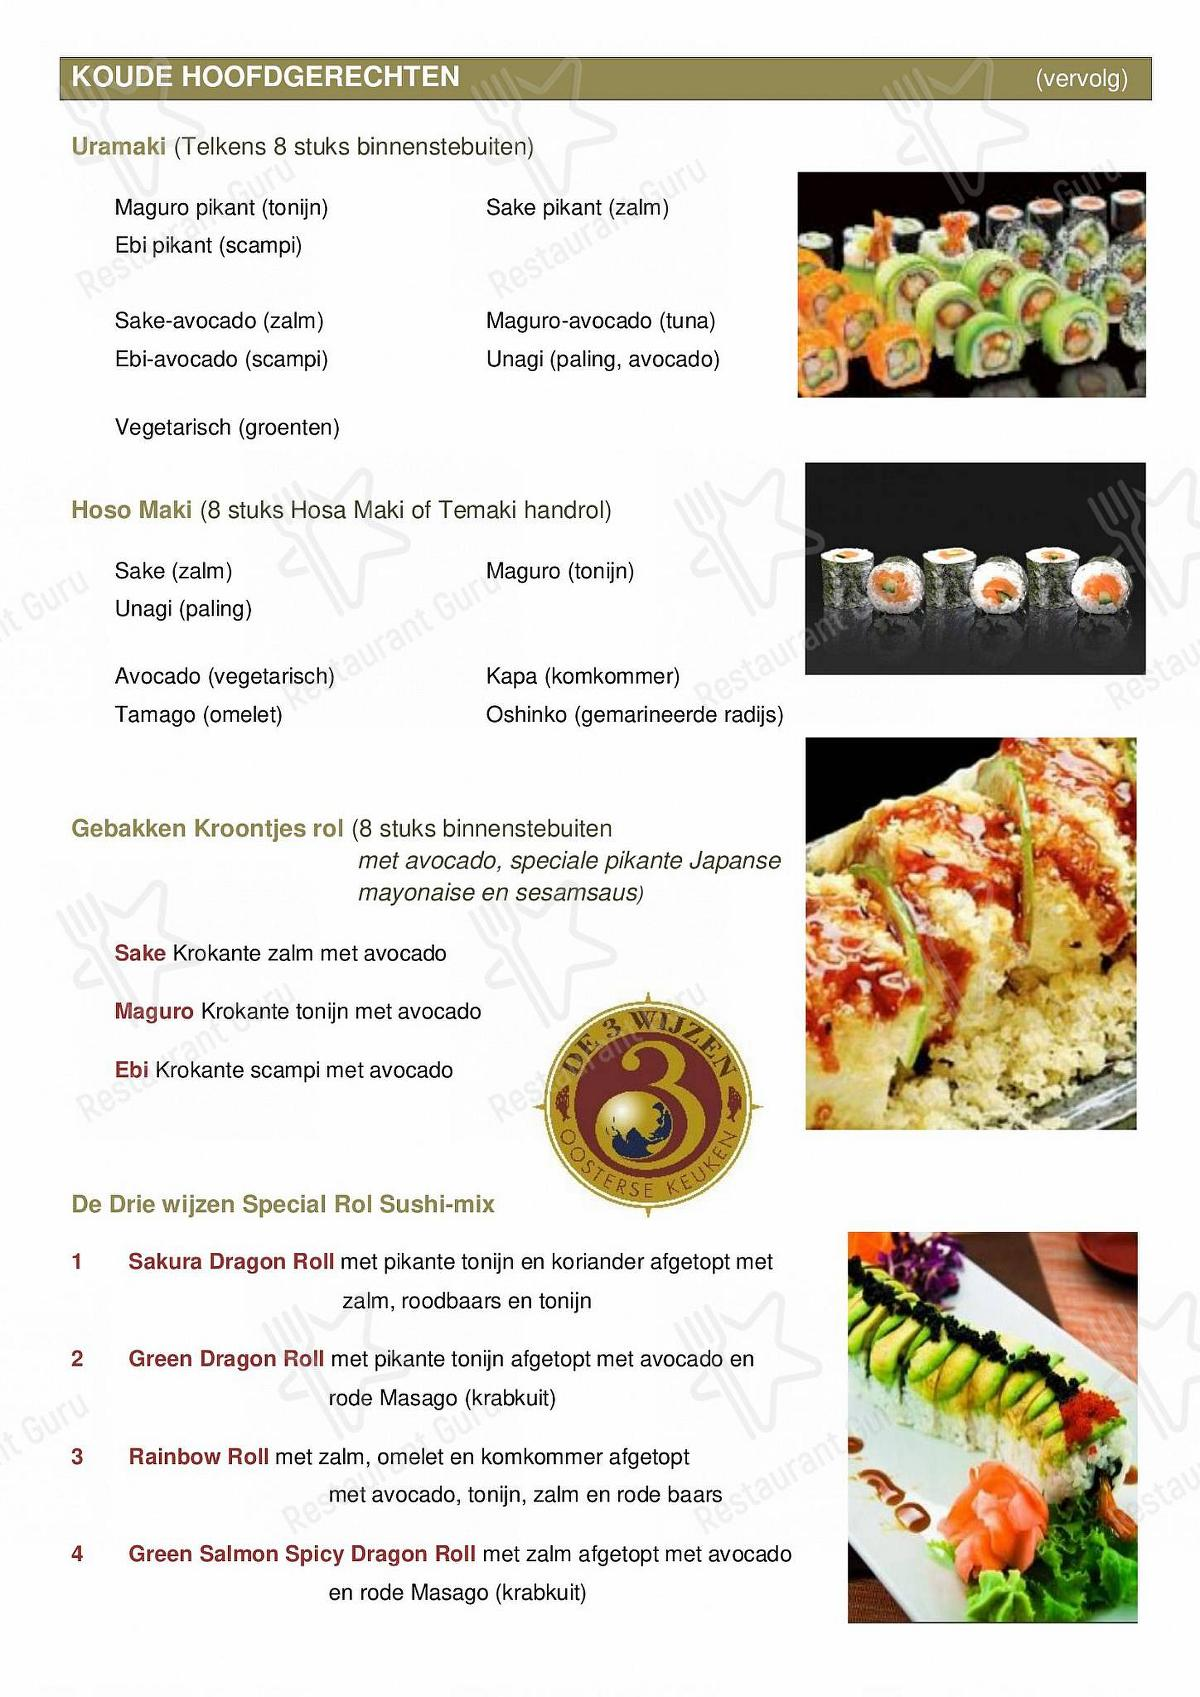 De 3 Wijzen menu - dishes and beverages